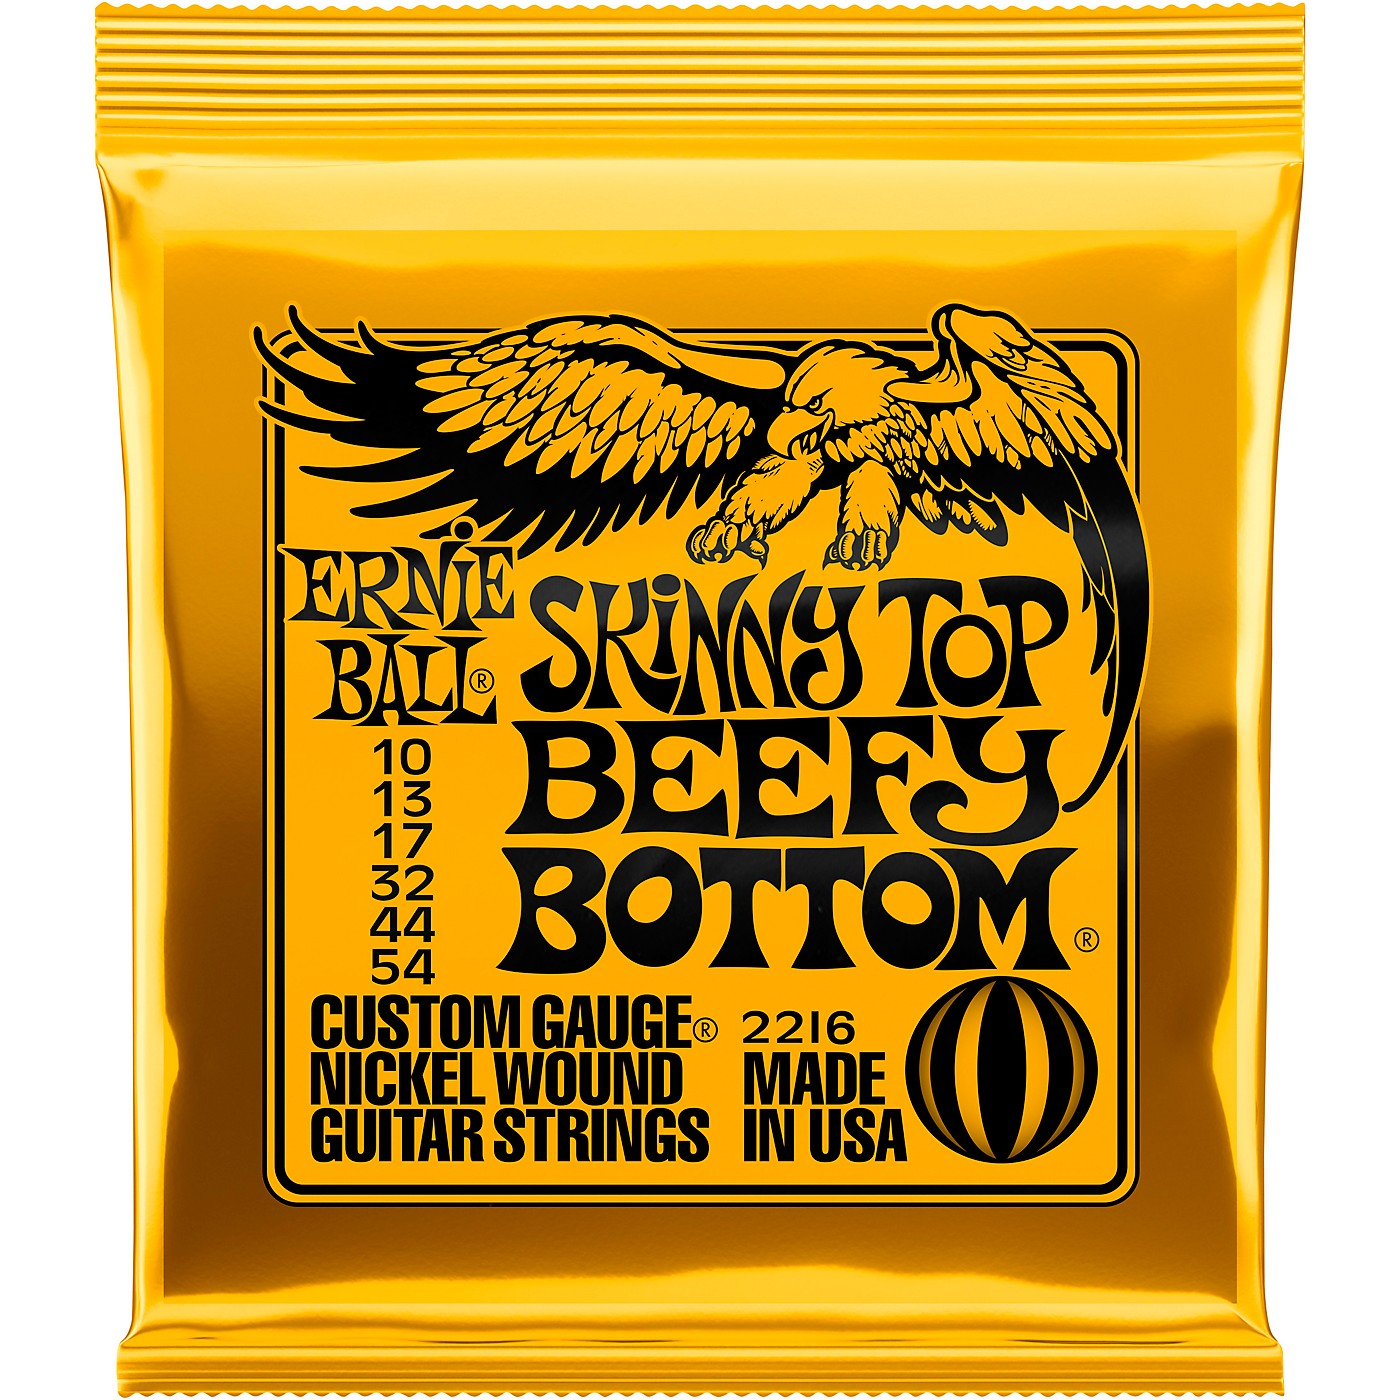 Ernie Ball Skinny Top/Beefy Bottom 2216 (10-54) Nickel Wound Electric Guitar Strings thumbnail